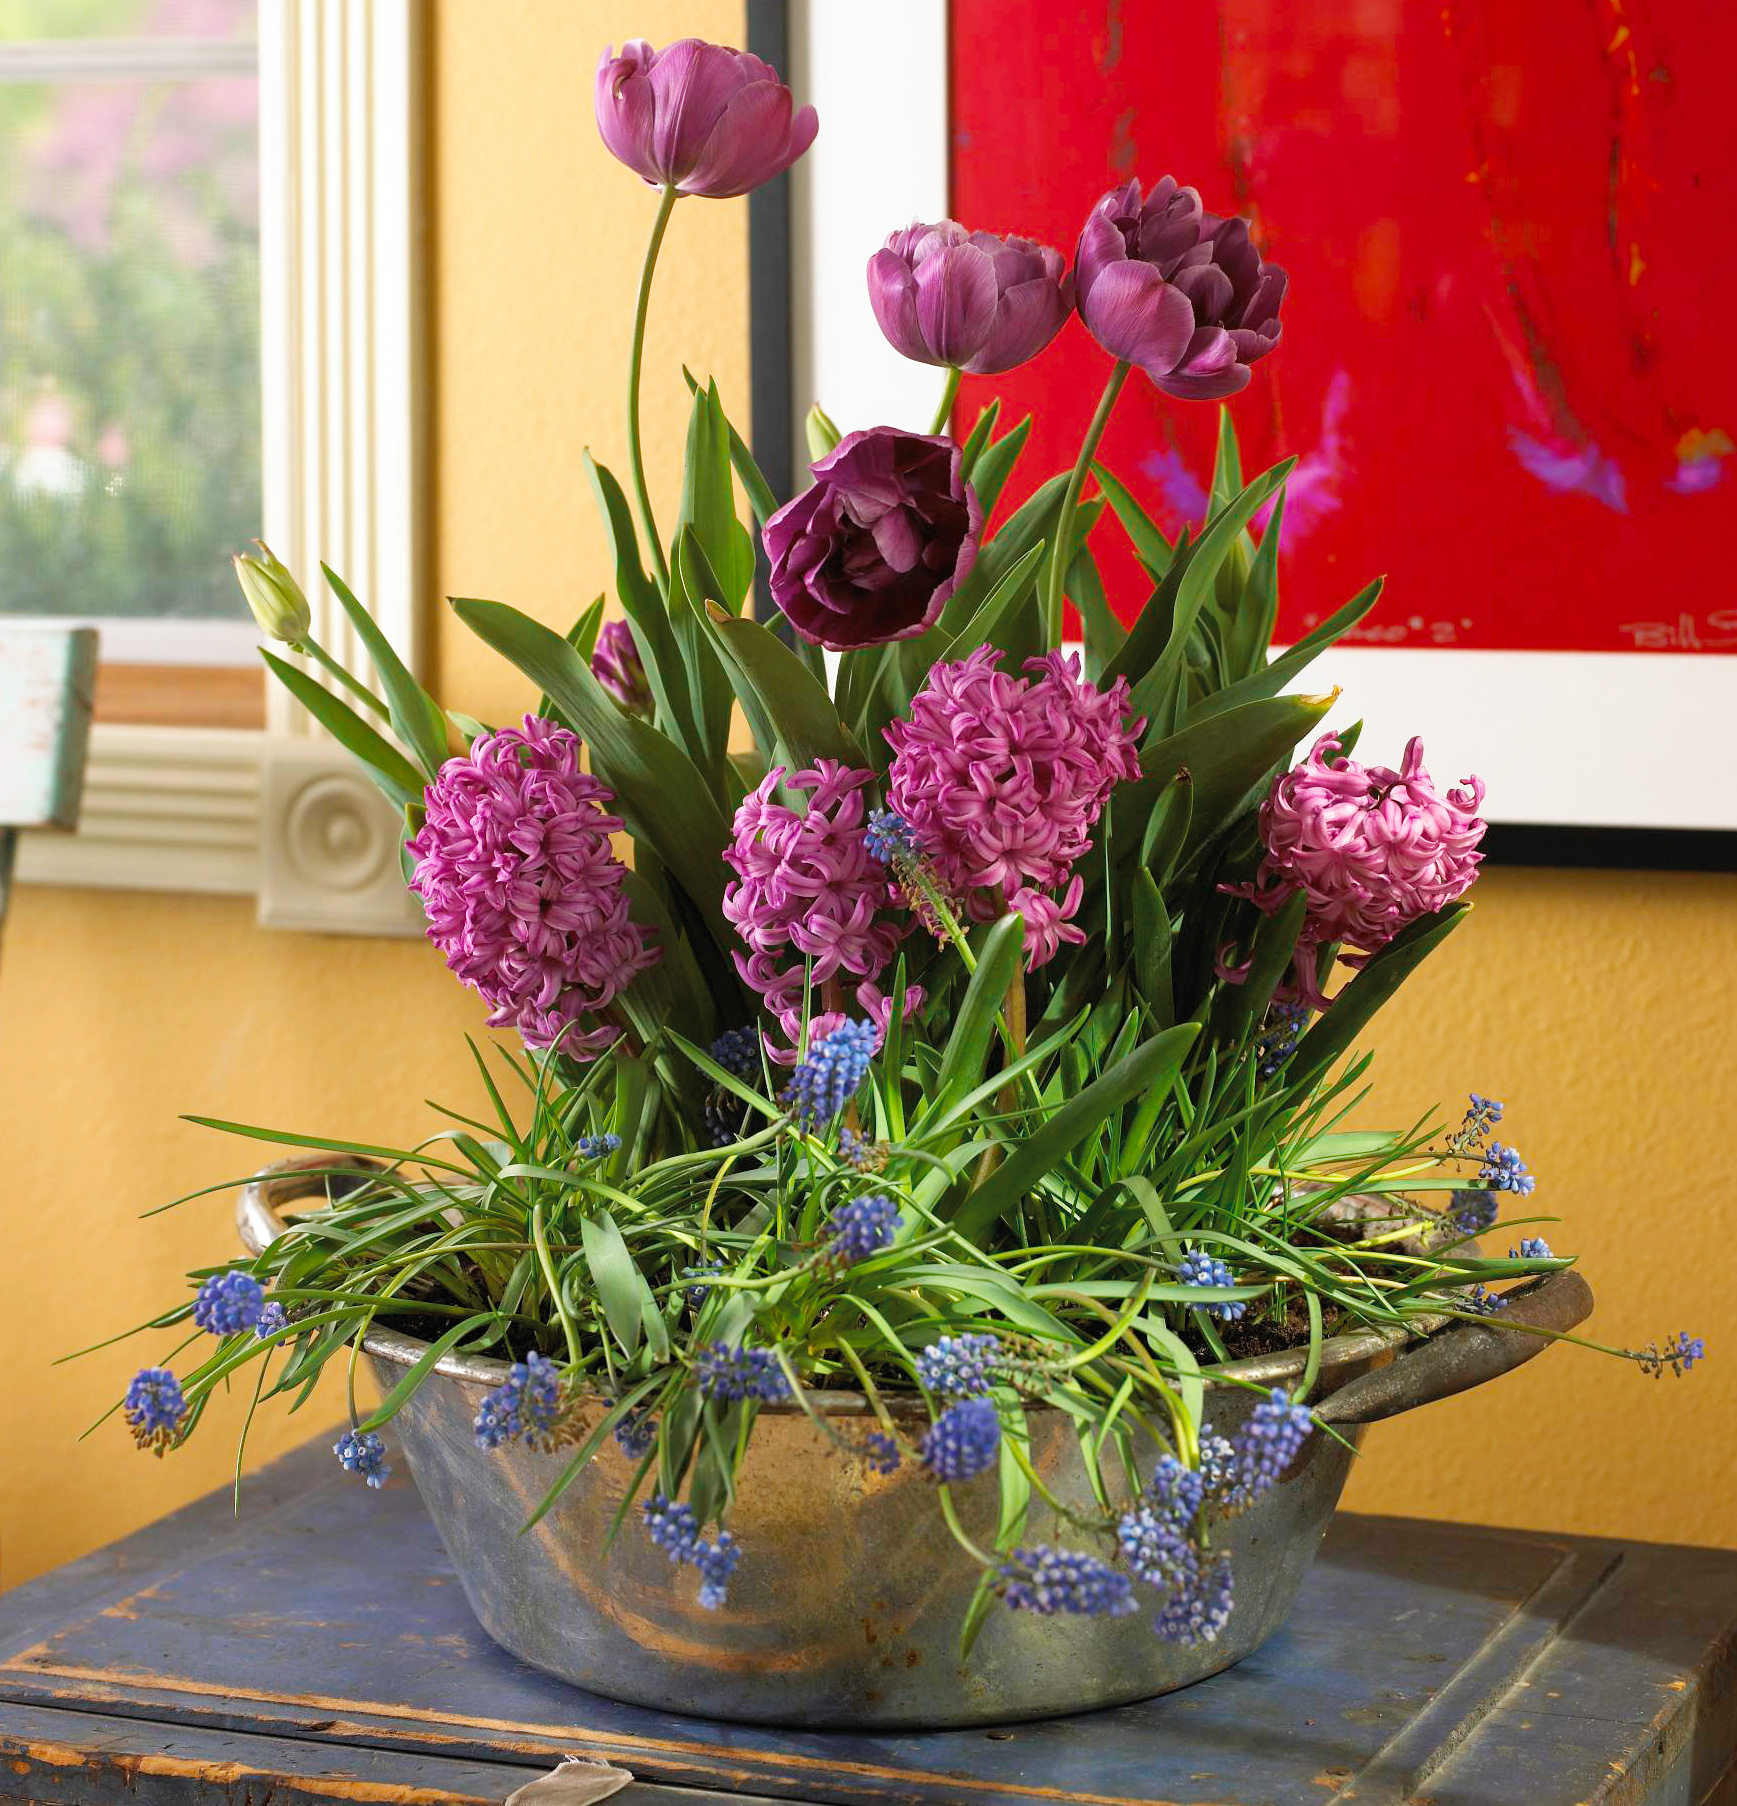 More indoor plant ideas and tips